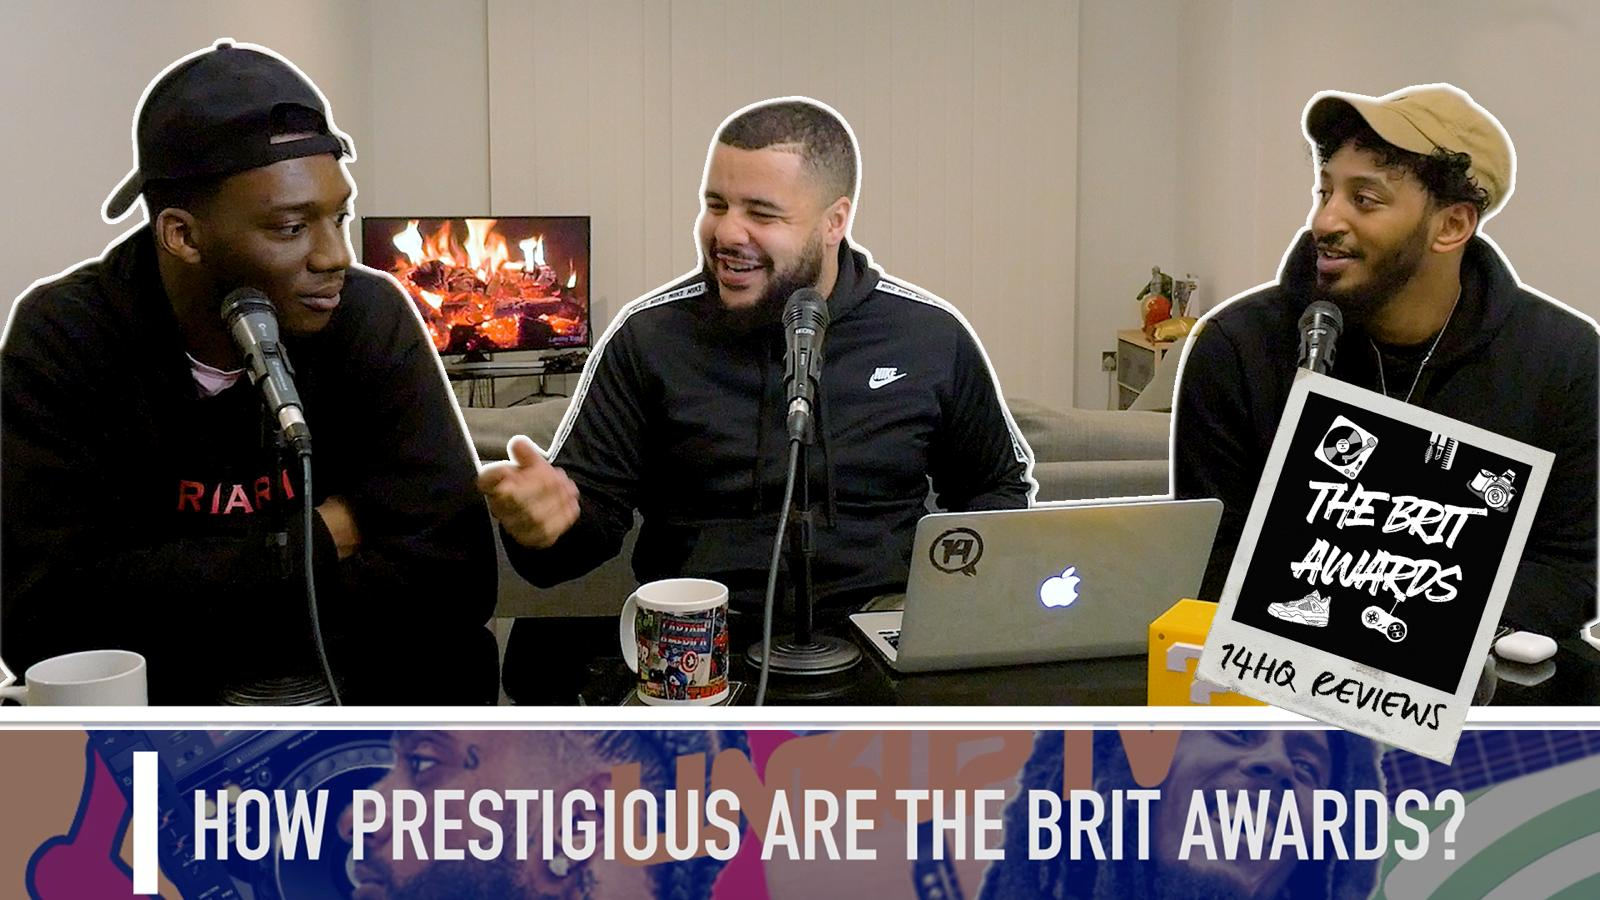 14HQ Reviews – The Brit Awards